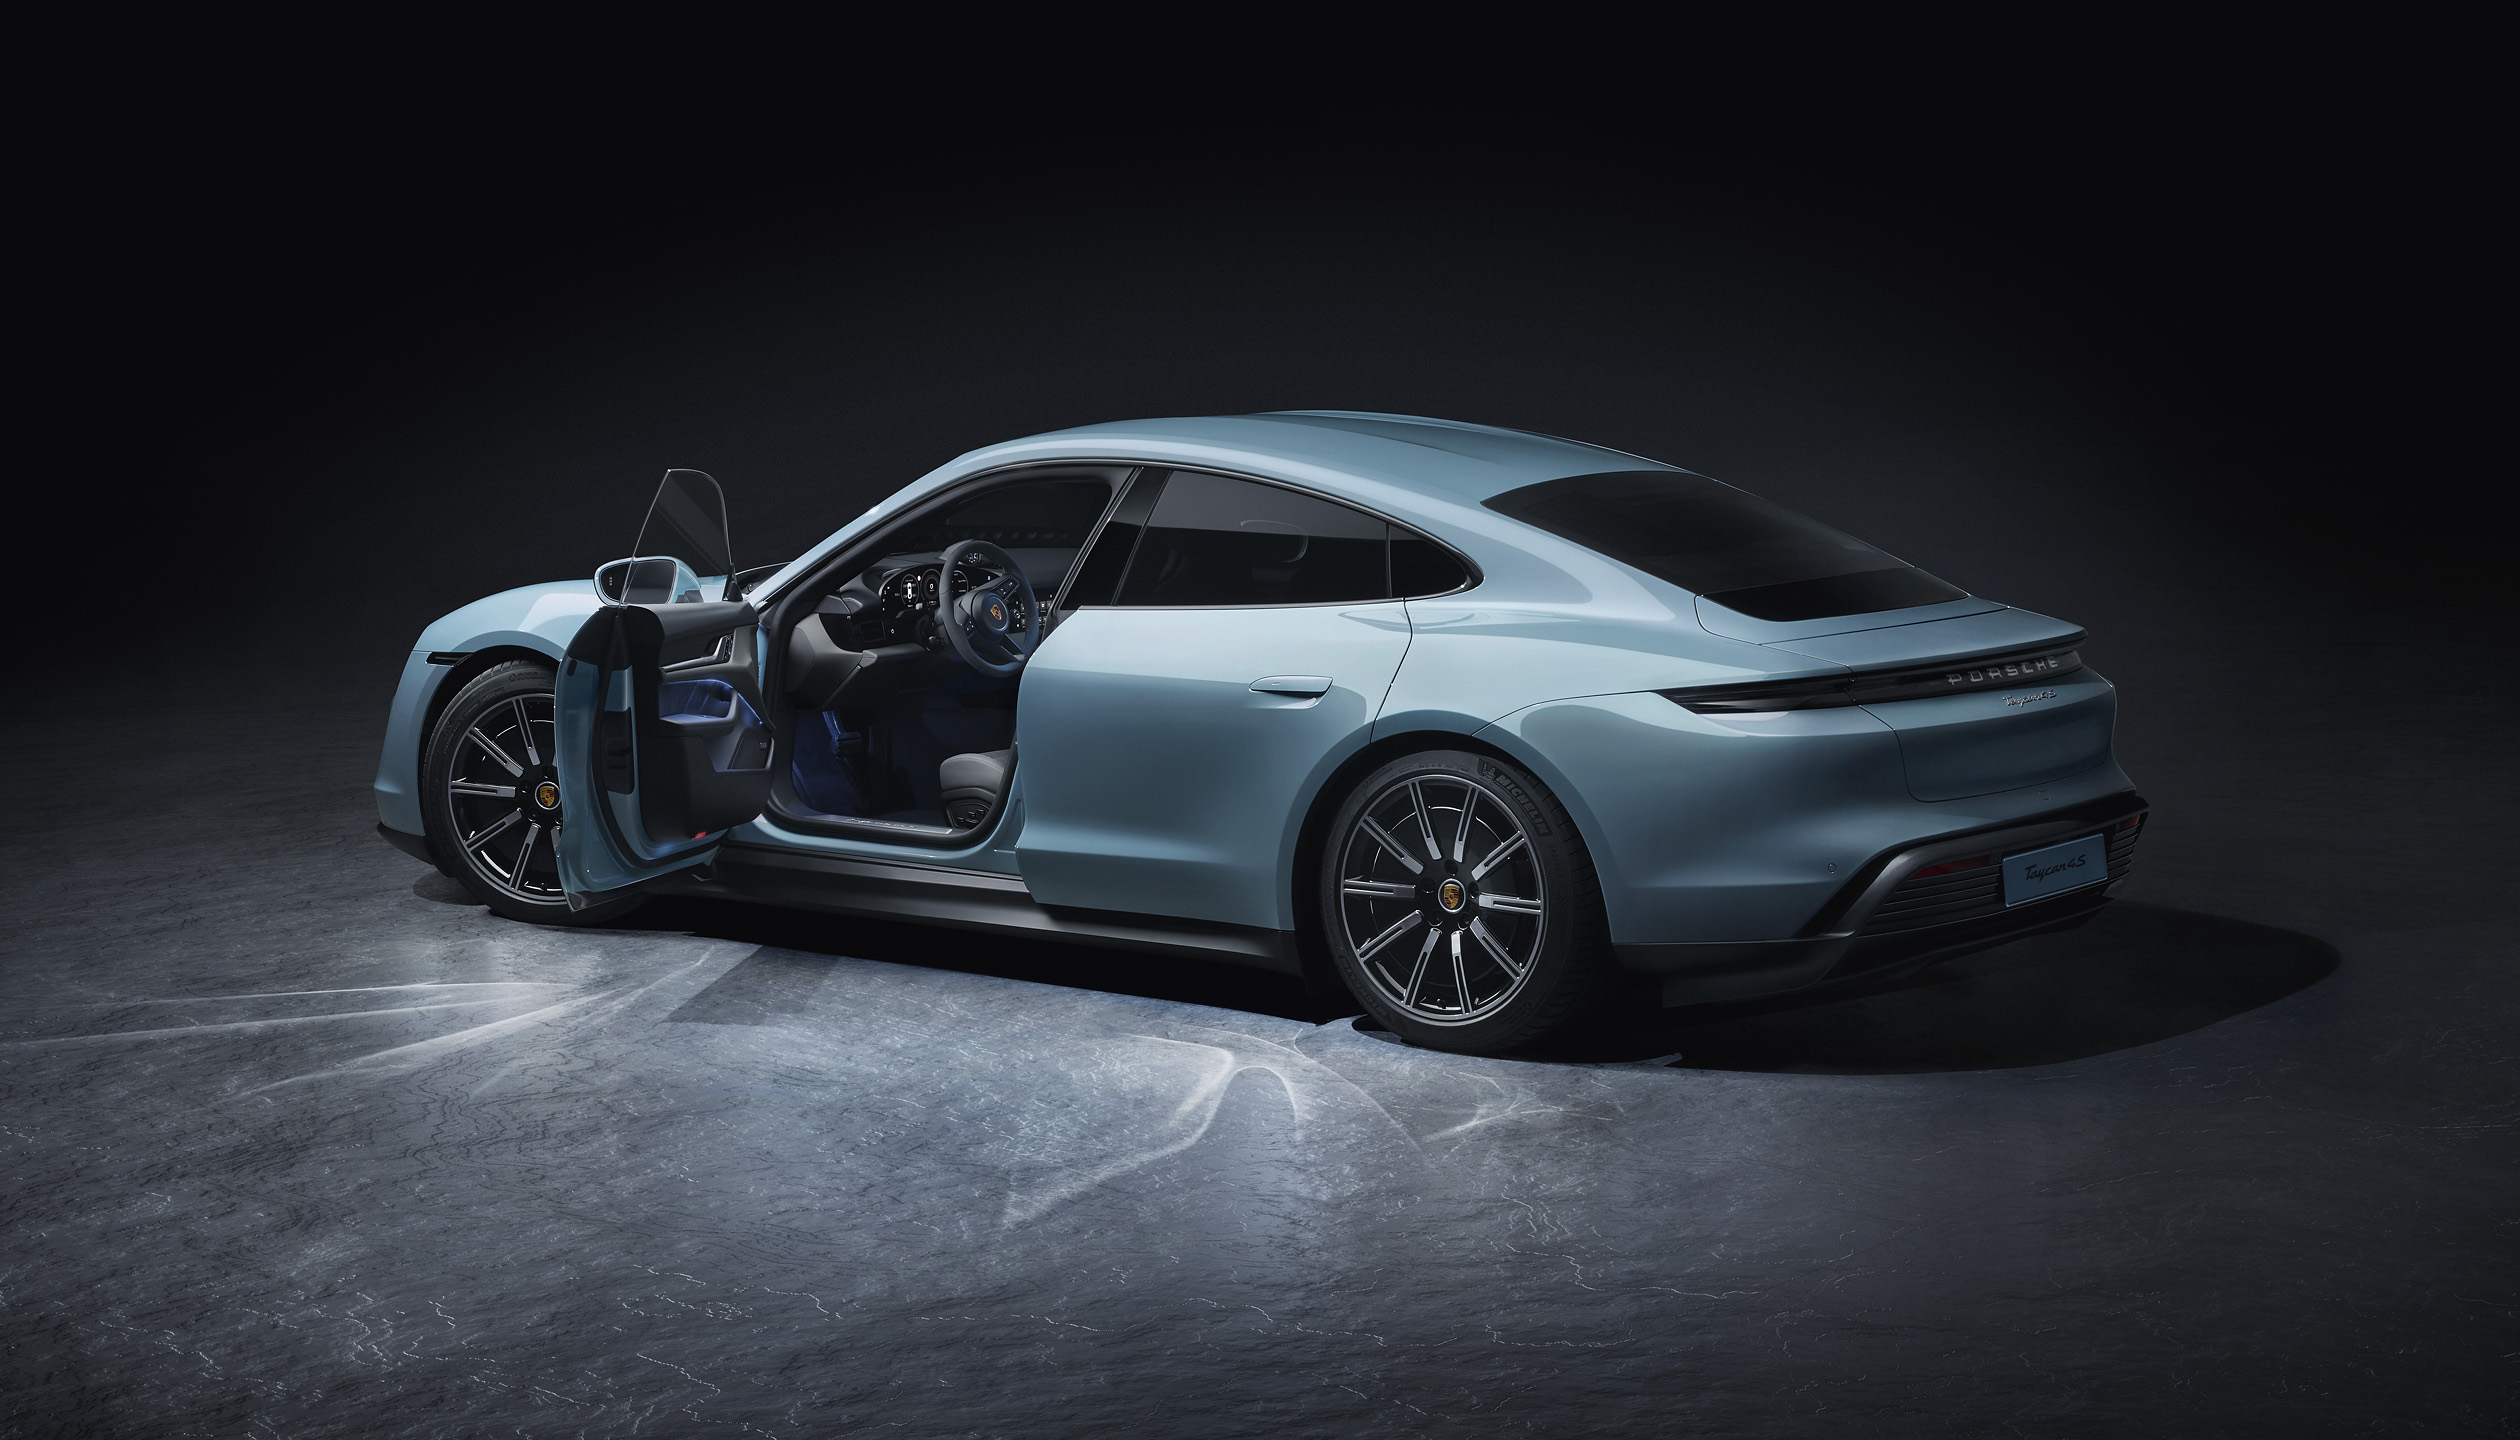 Porsche adds the Taycan 4S to the electric family [2]